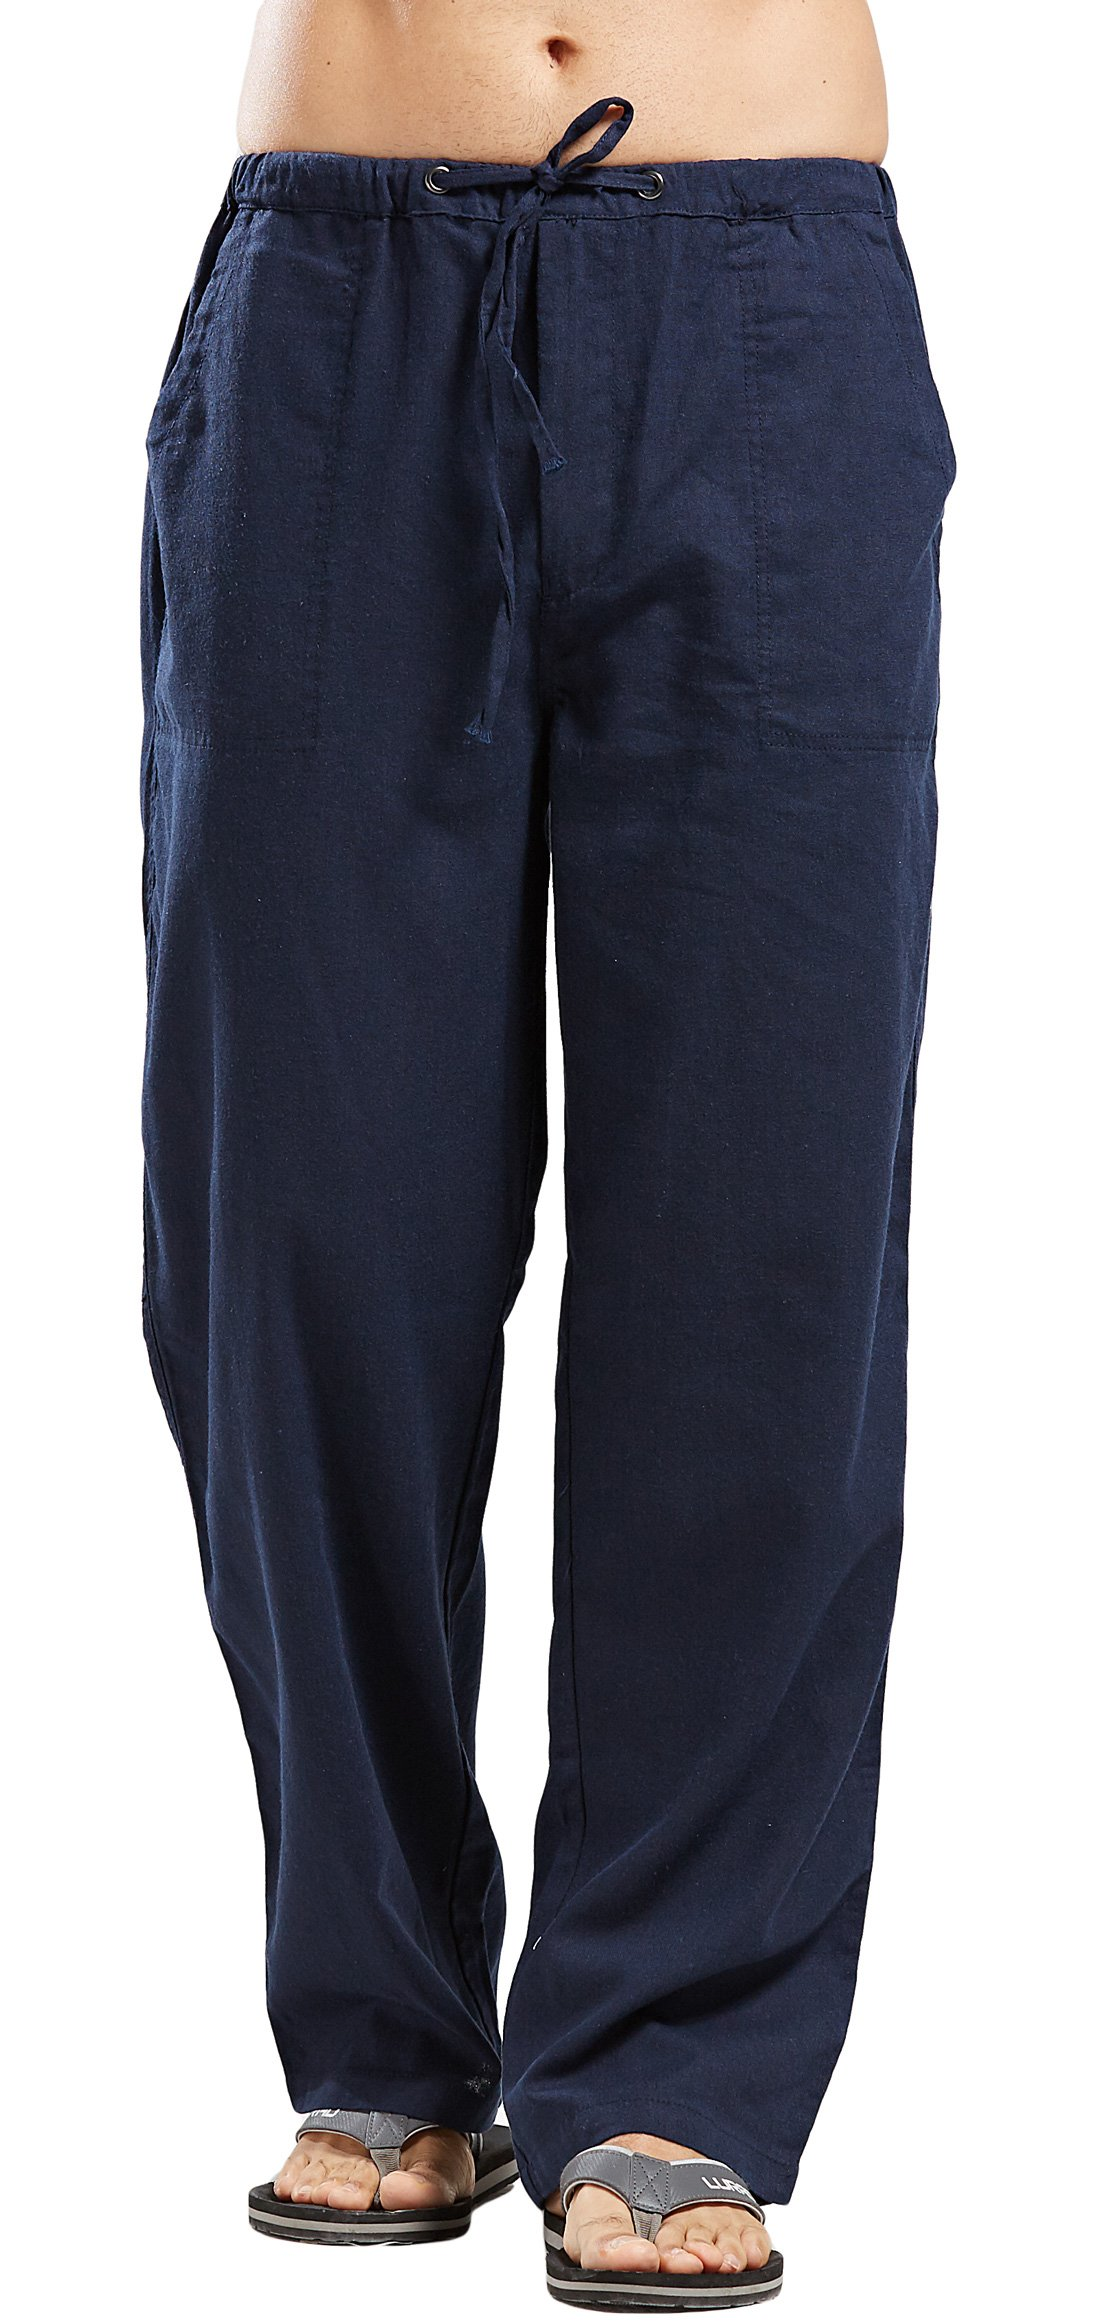 utcoco Qiuse Men's Casual Loose Fit Straight-Legs Stretchy Waist Beach Pants (XX-Large, Navy)